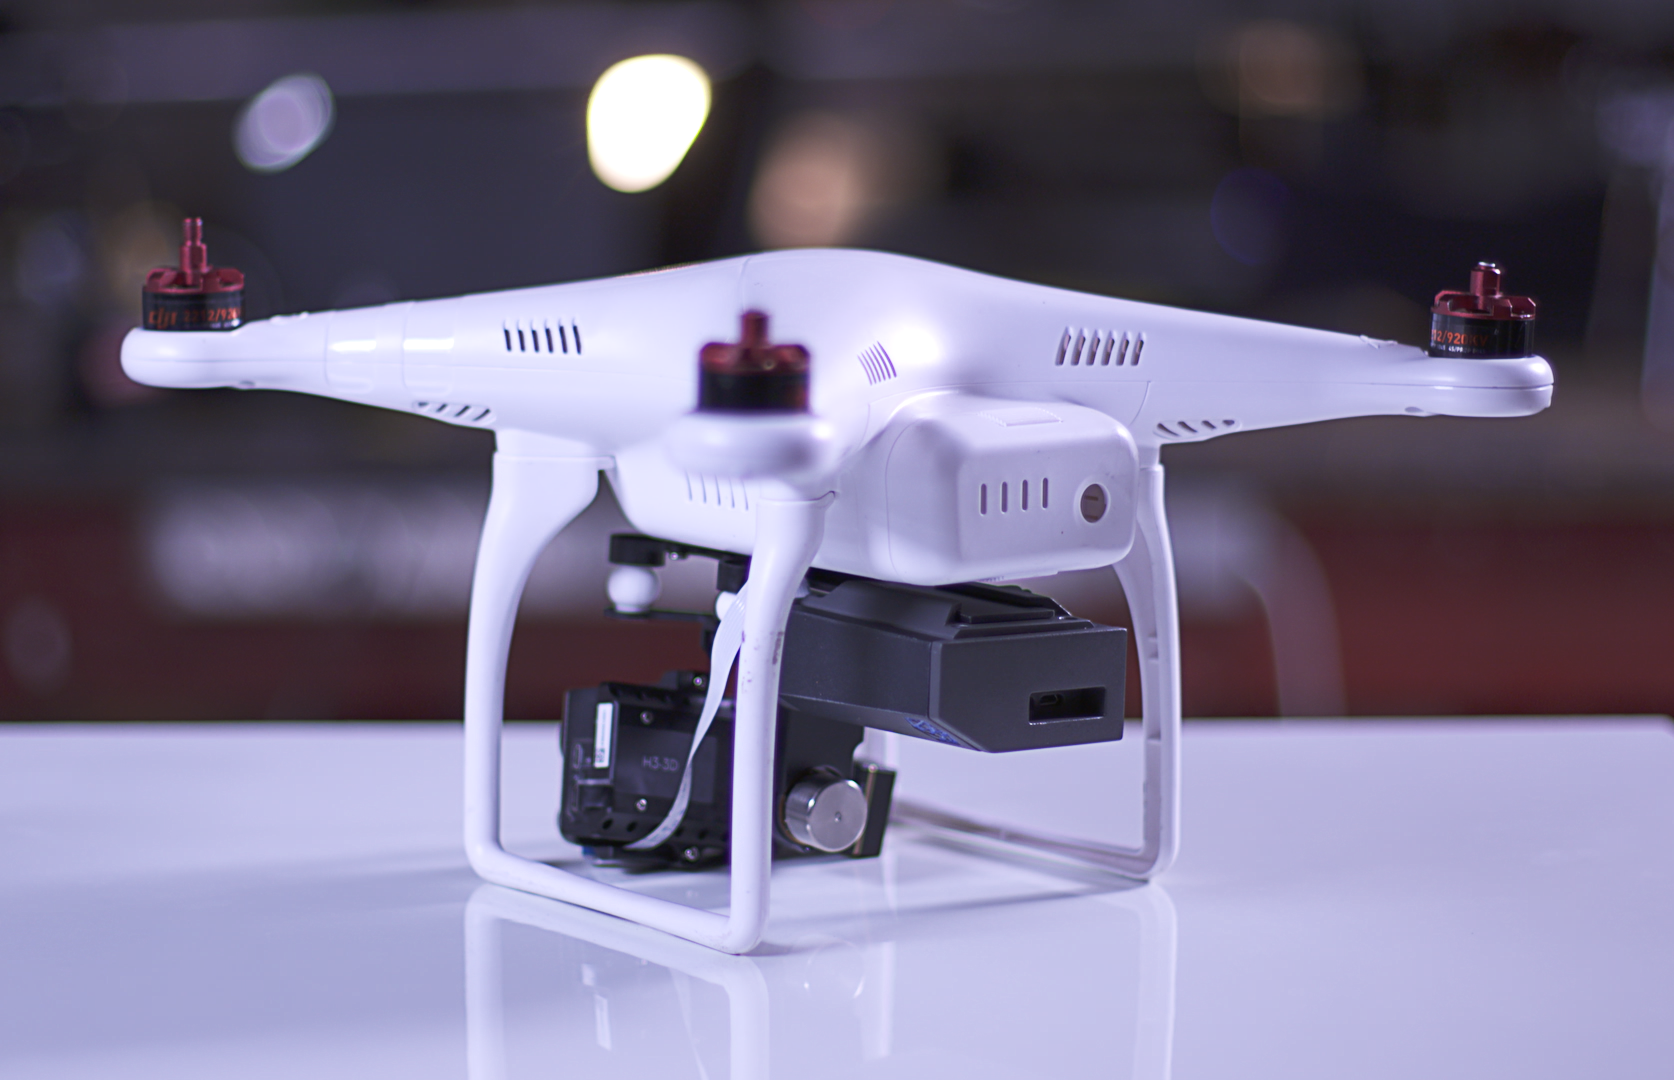 The Percepto unit is the black box mounted on the right on the underside of this DJI Phantom drone.